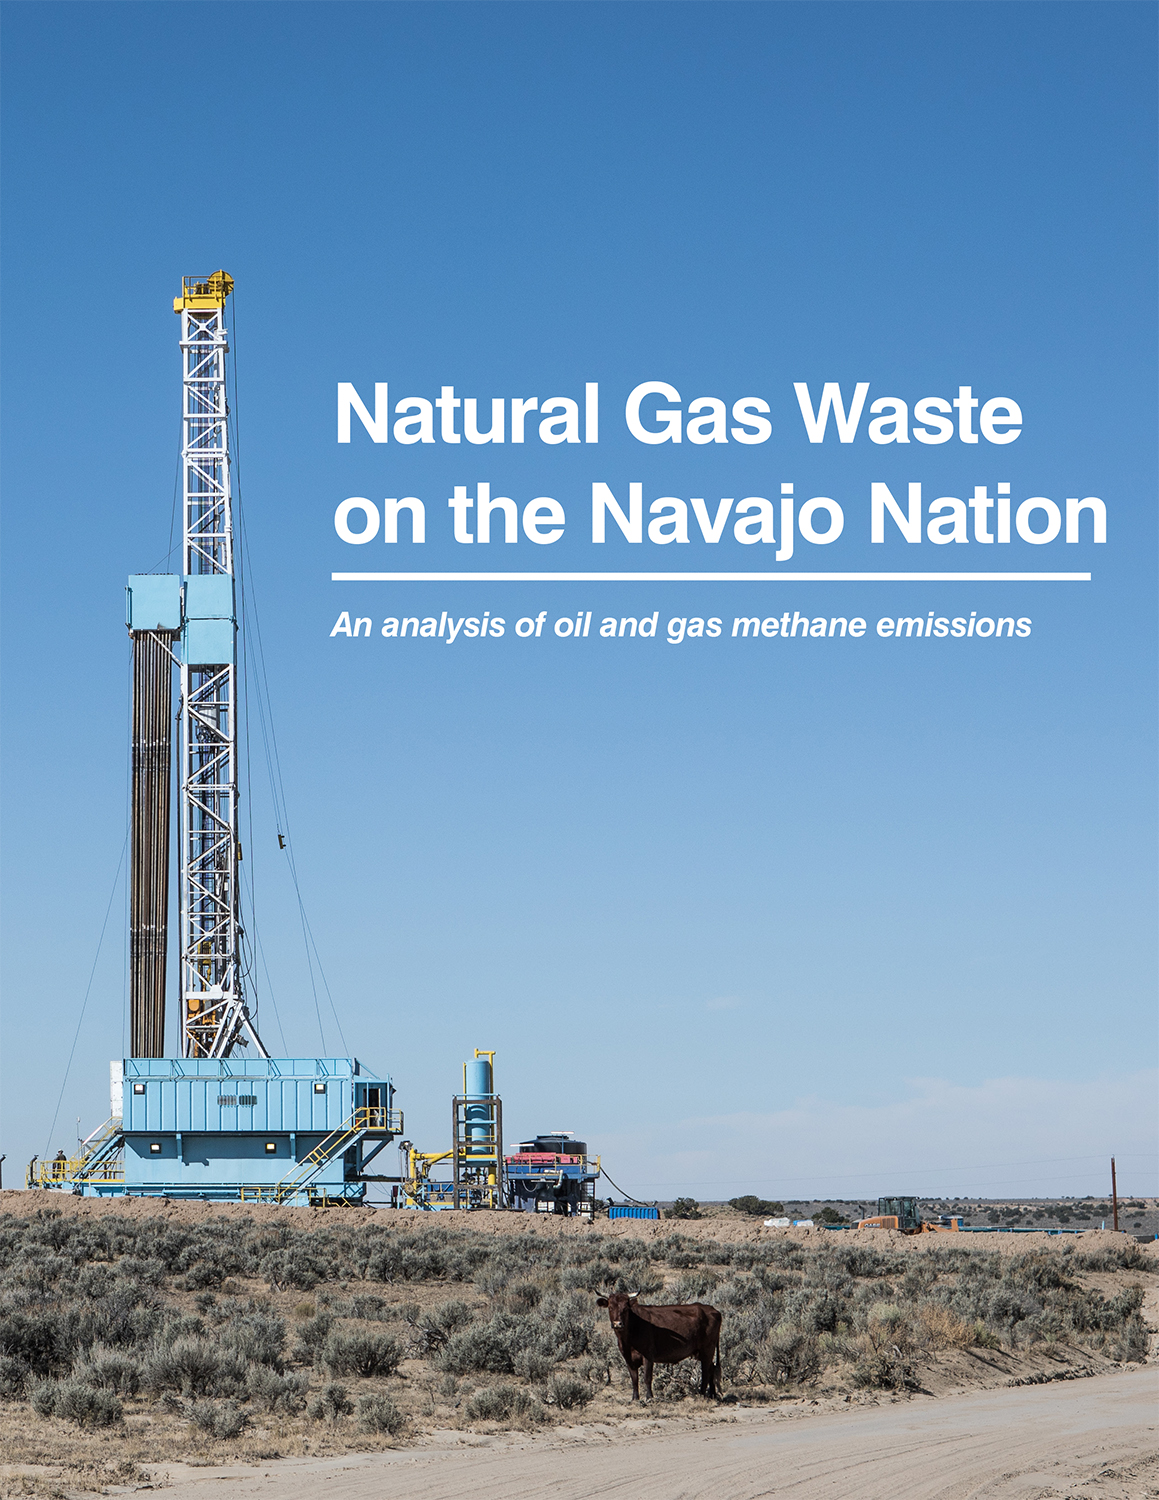 Natural Gas Waste on the Navajo Nation